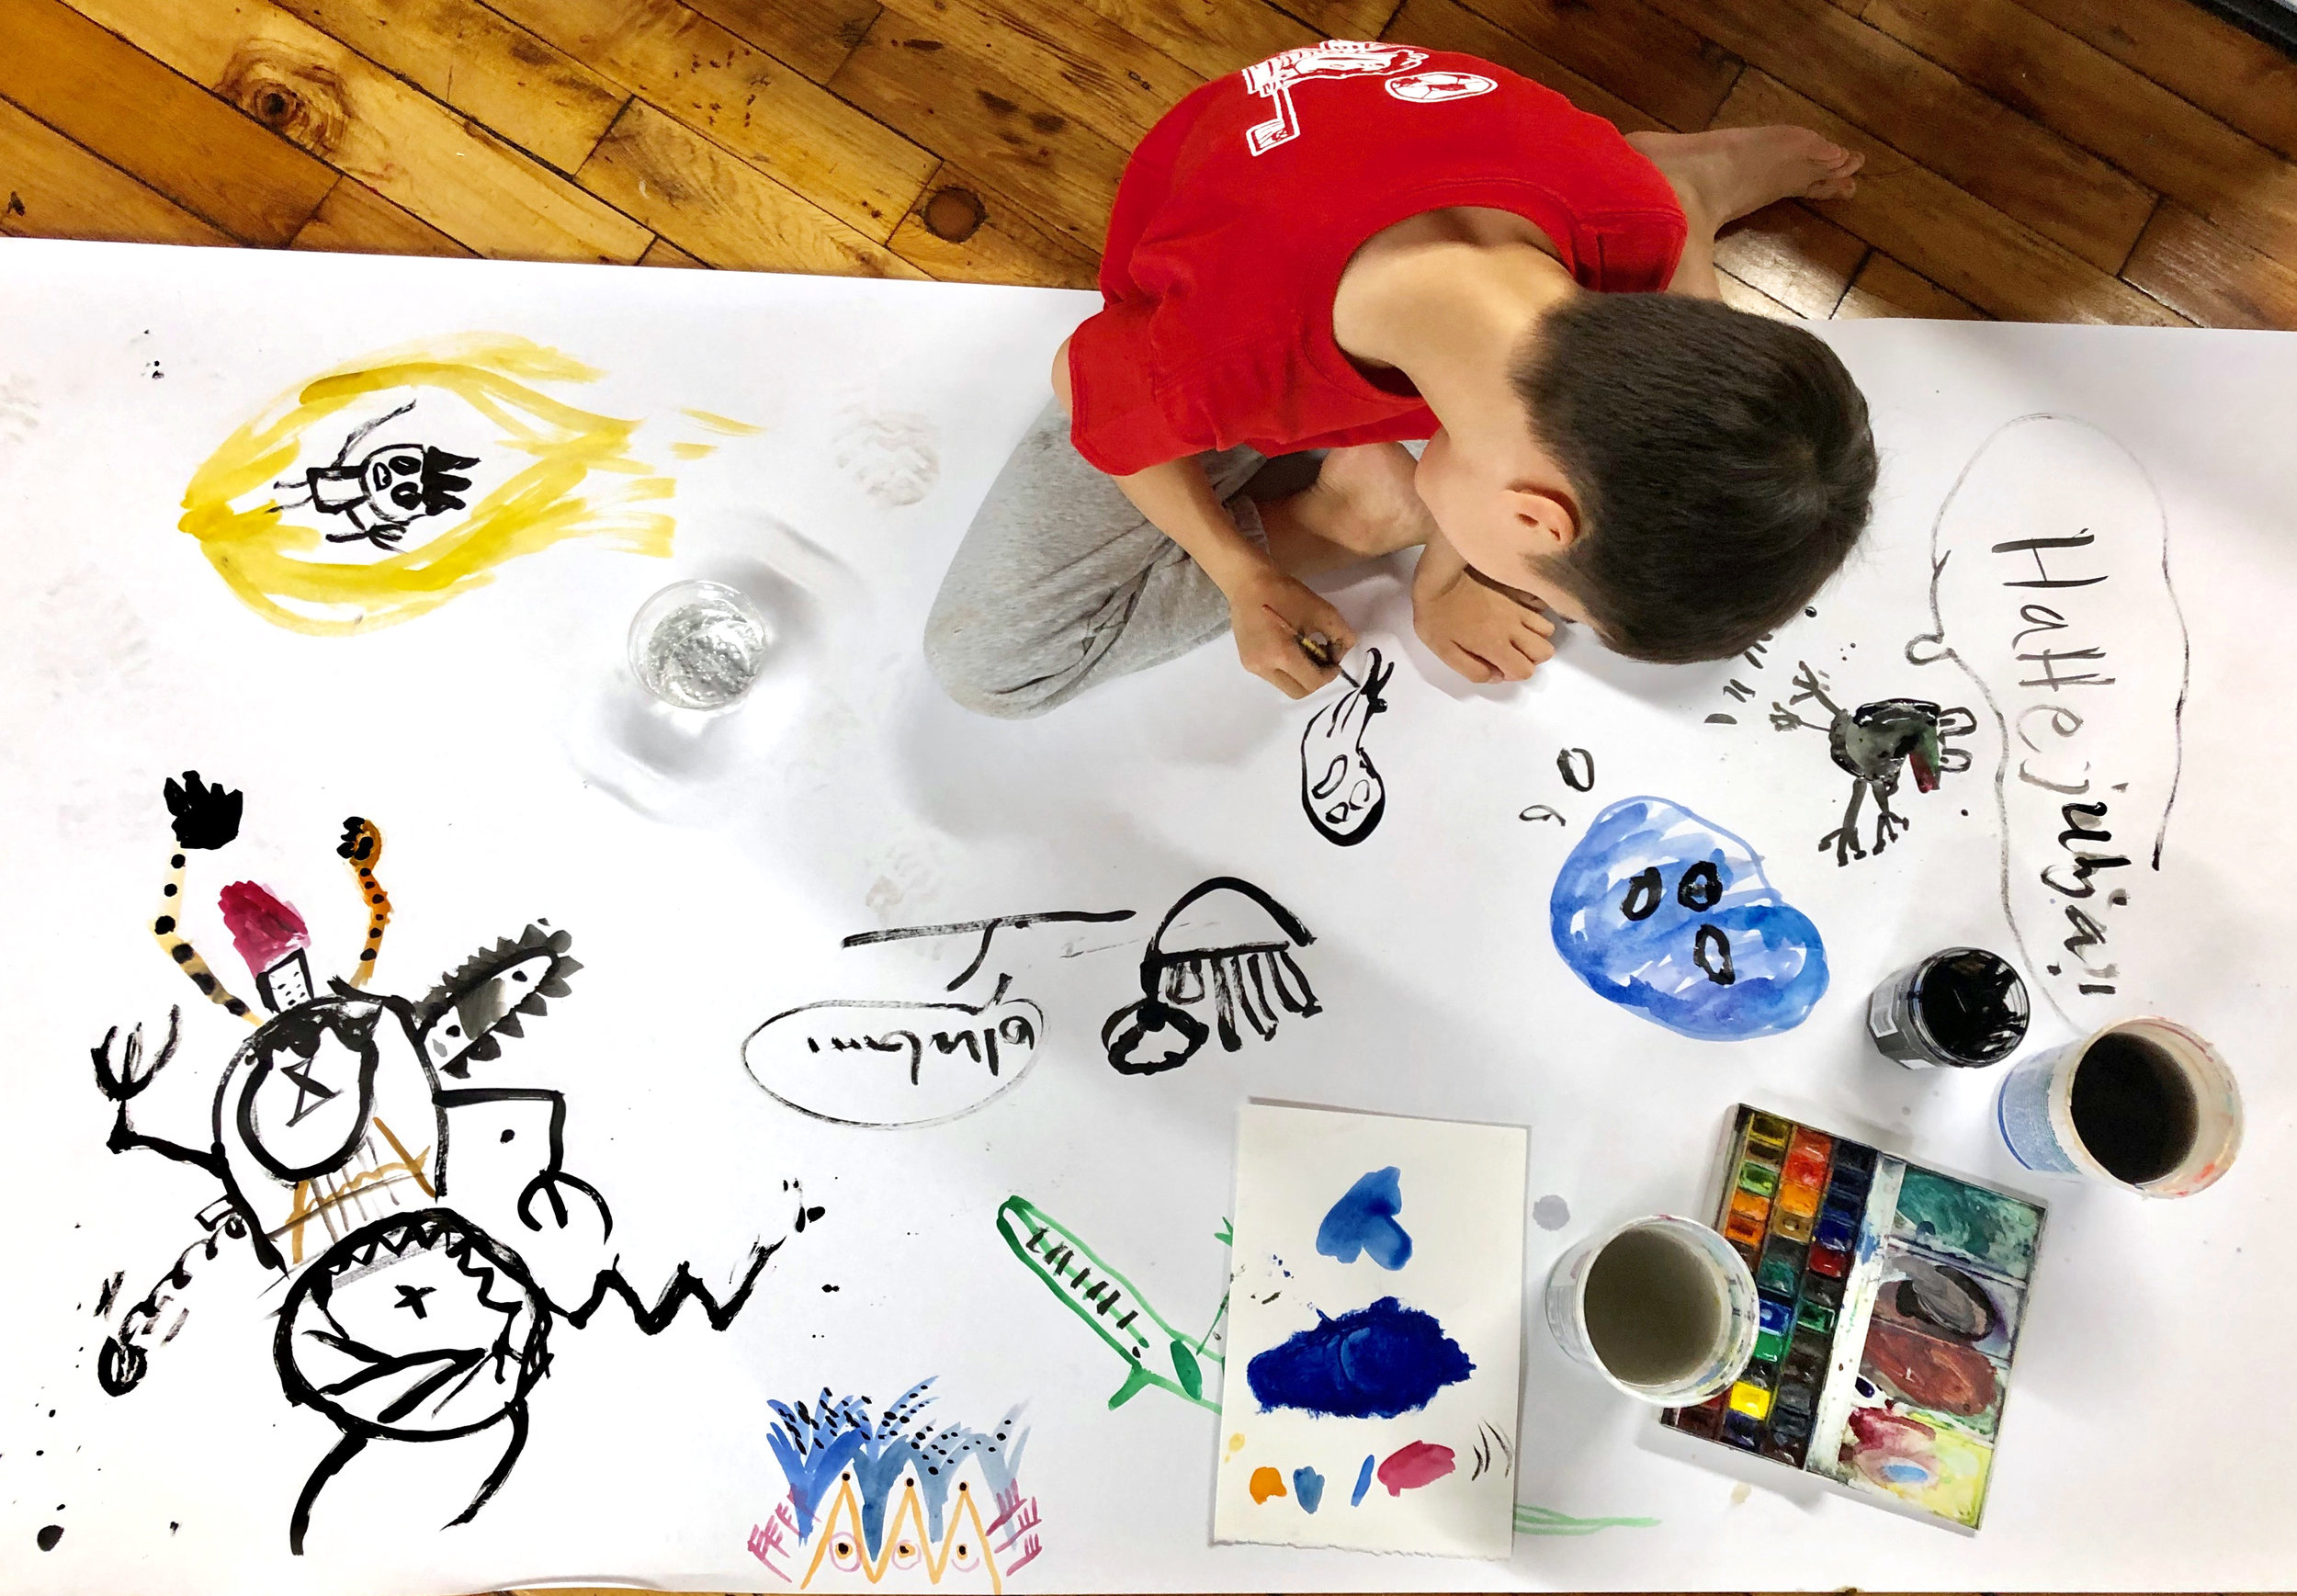 Kai is drawing with ink and watercolor.